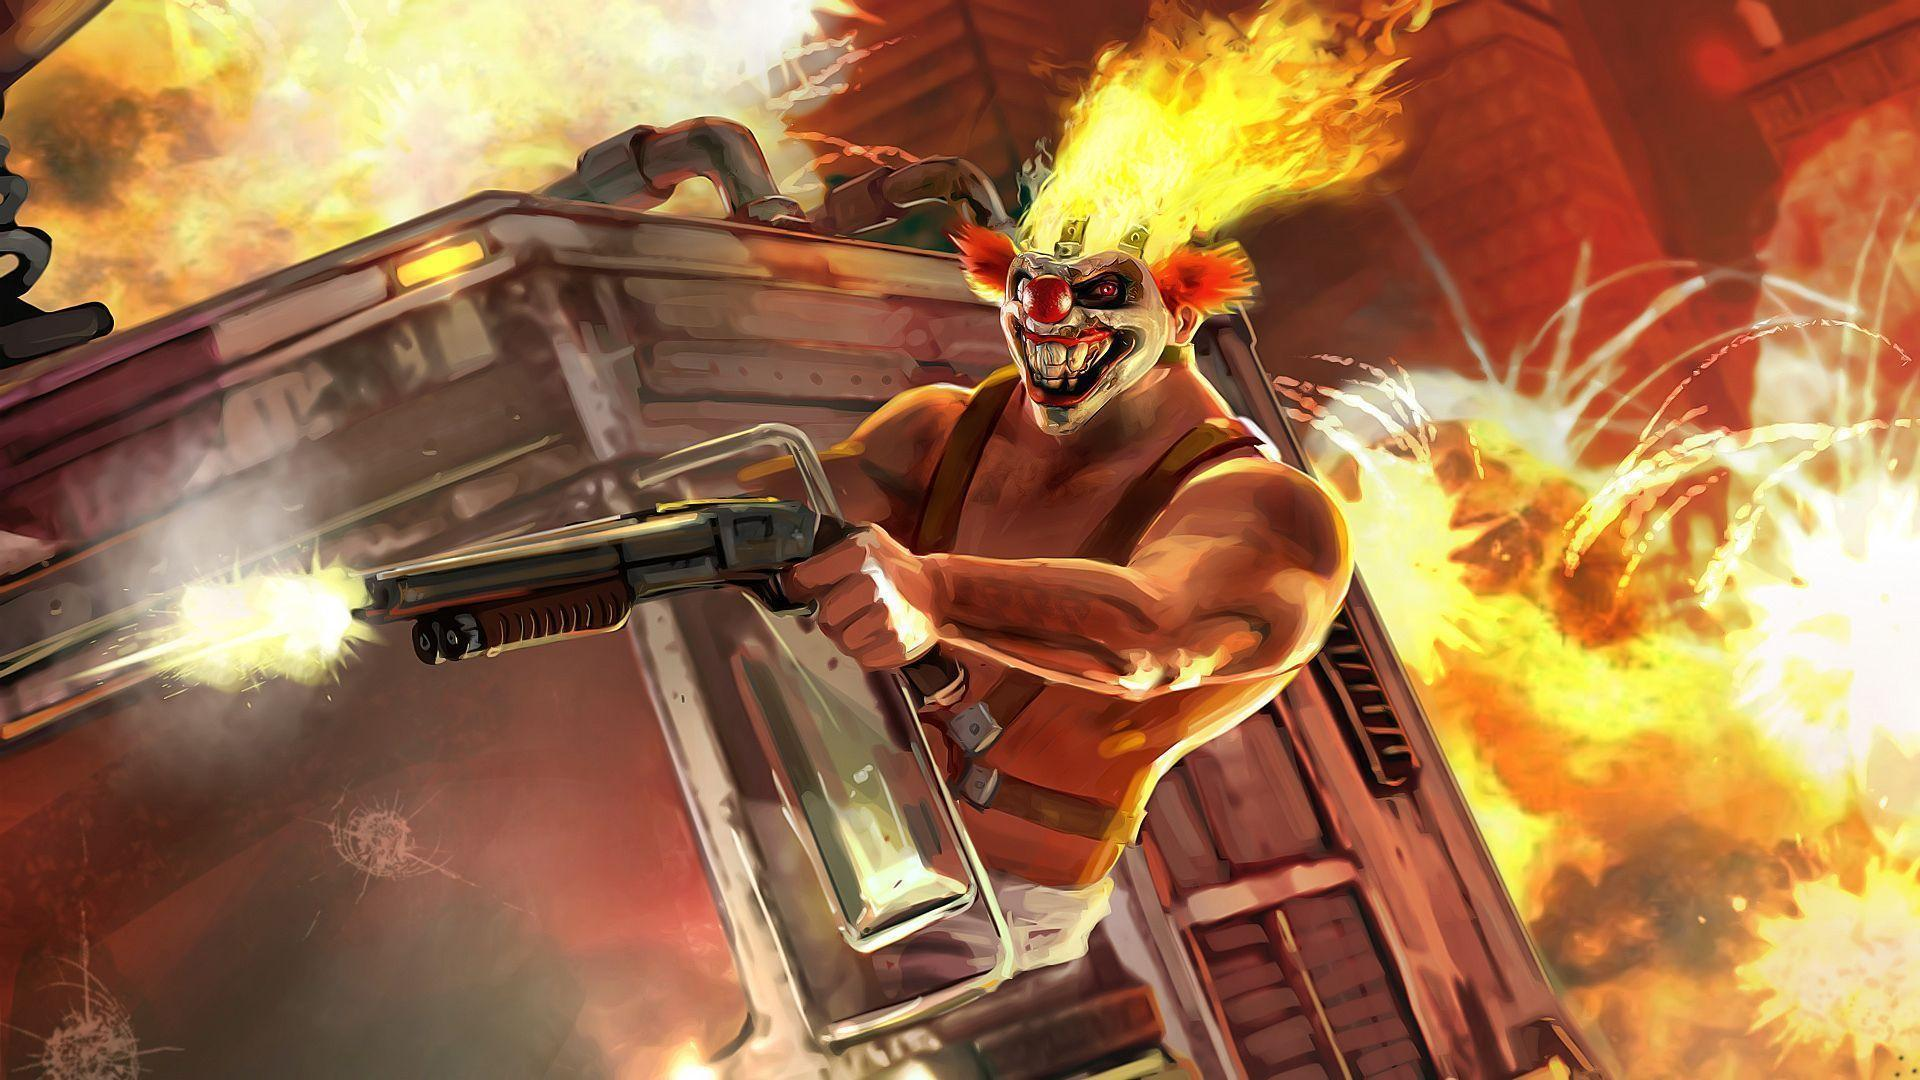 Twisted metal wallpapers wallpaper cave - Sweet tooth wallpaper twisted metal ...